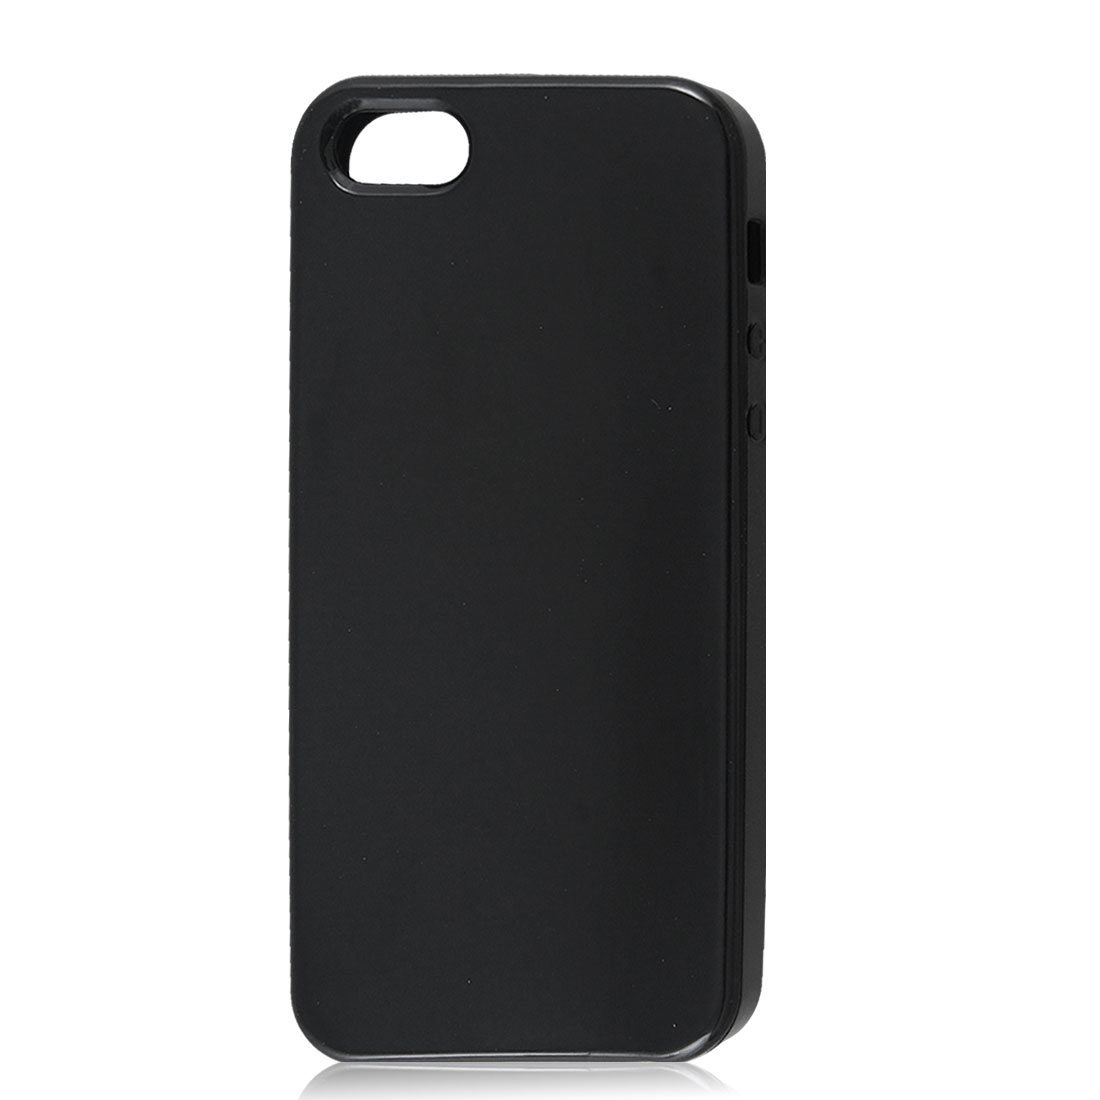 Black Soft Plastic TPU Protective Case Cover Skin for Apple iPhone 5 5G